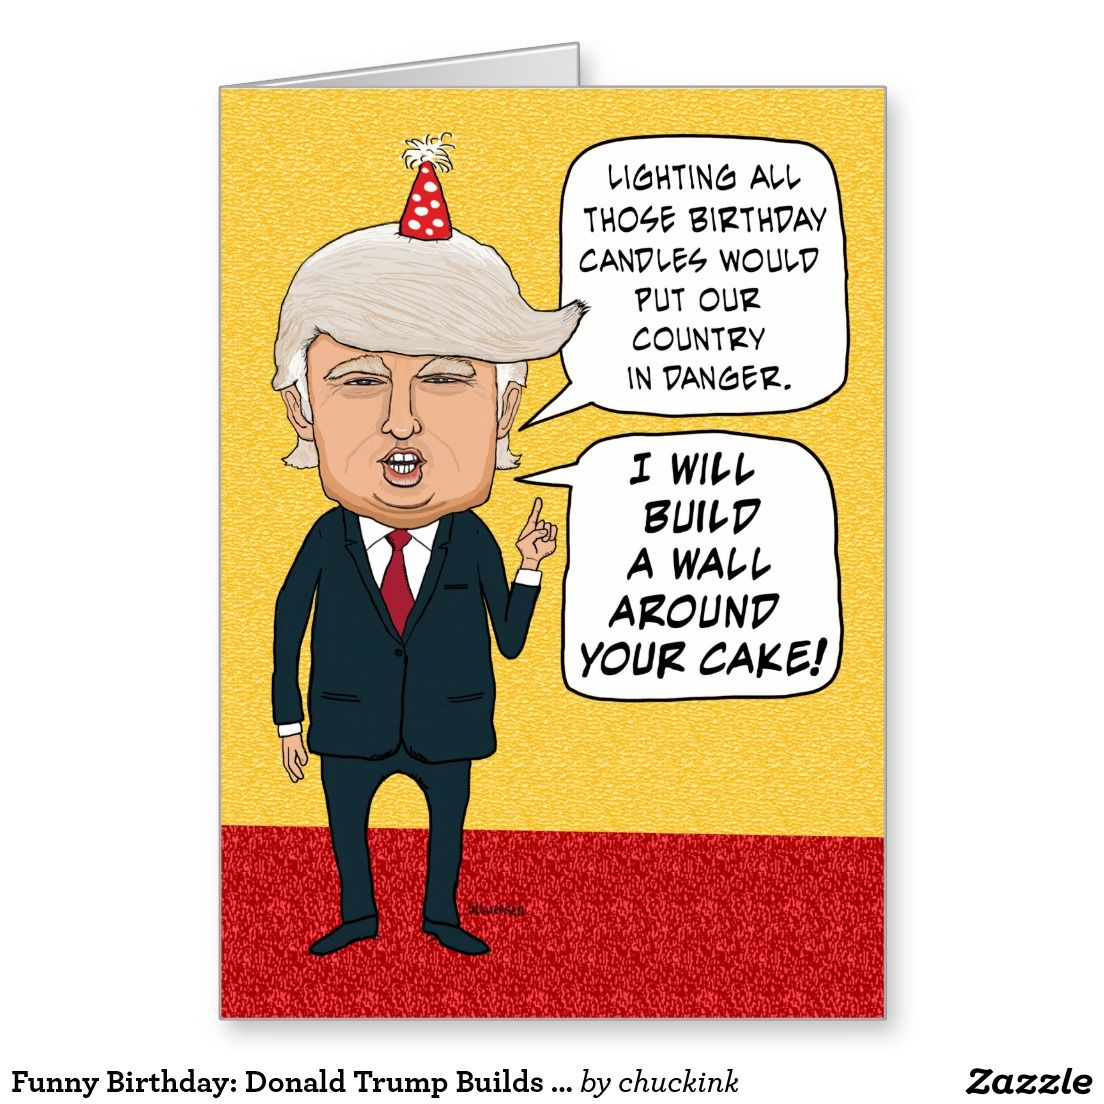 Funny Birthday Donald Trump Builds A Cake Wall Greeting